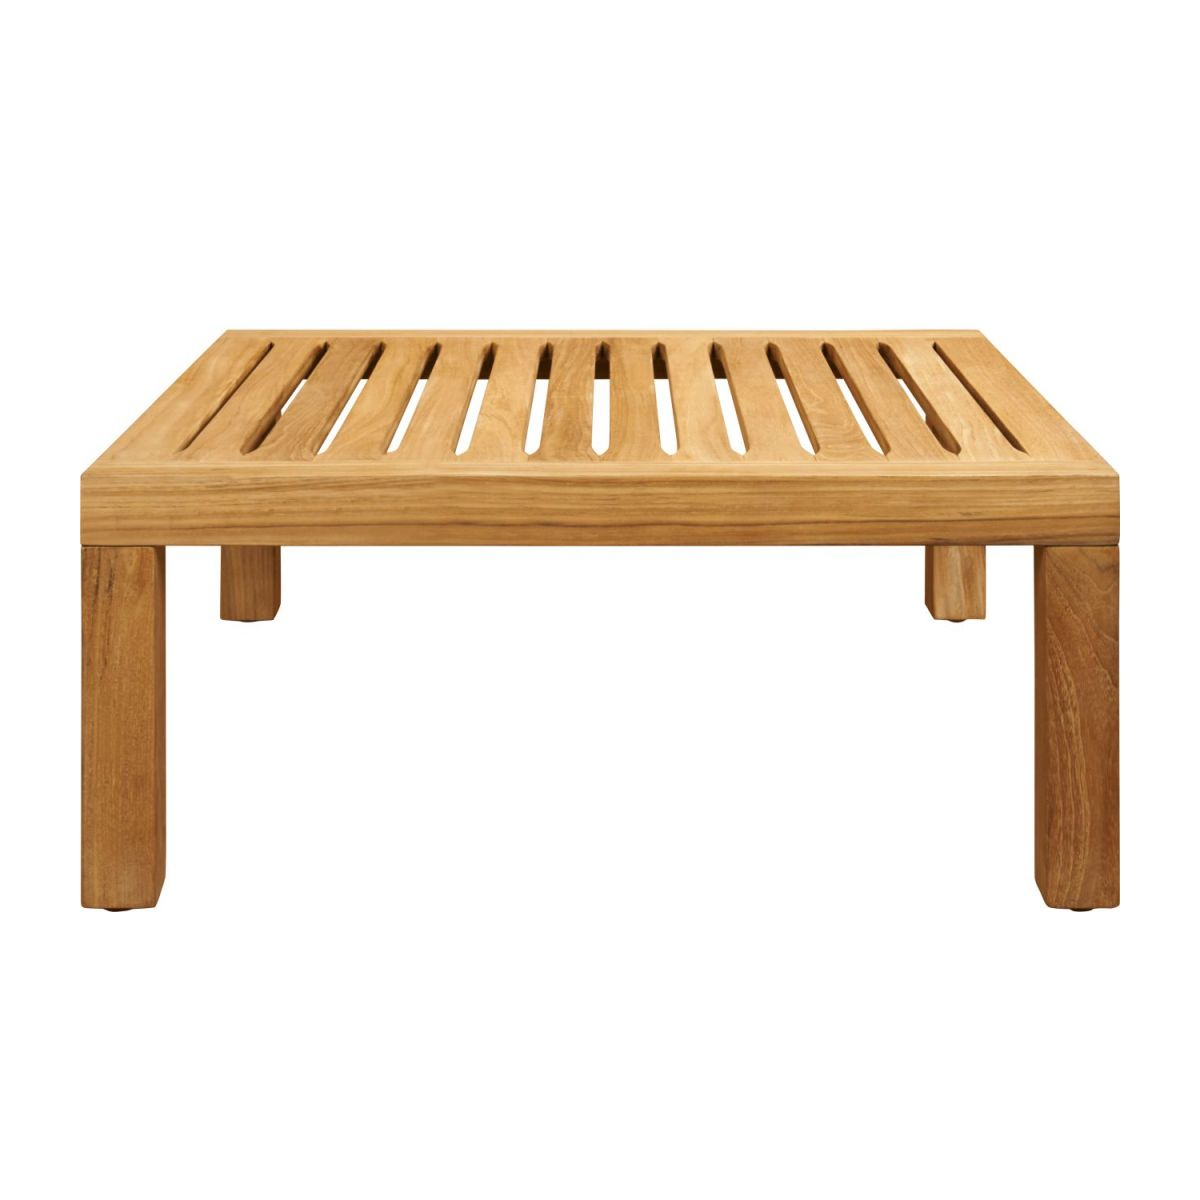 Teak square coffee table n°3